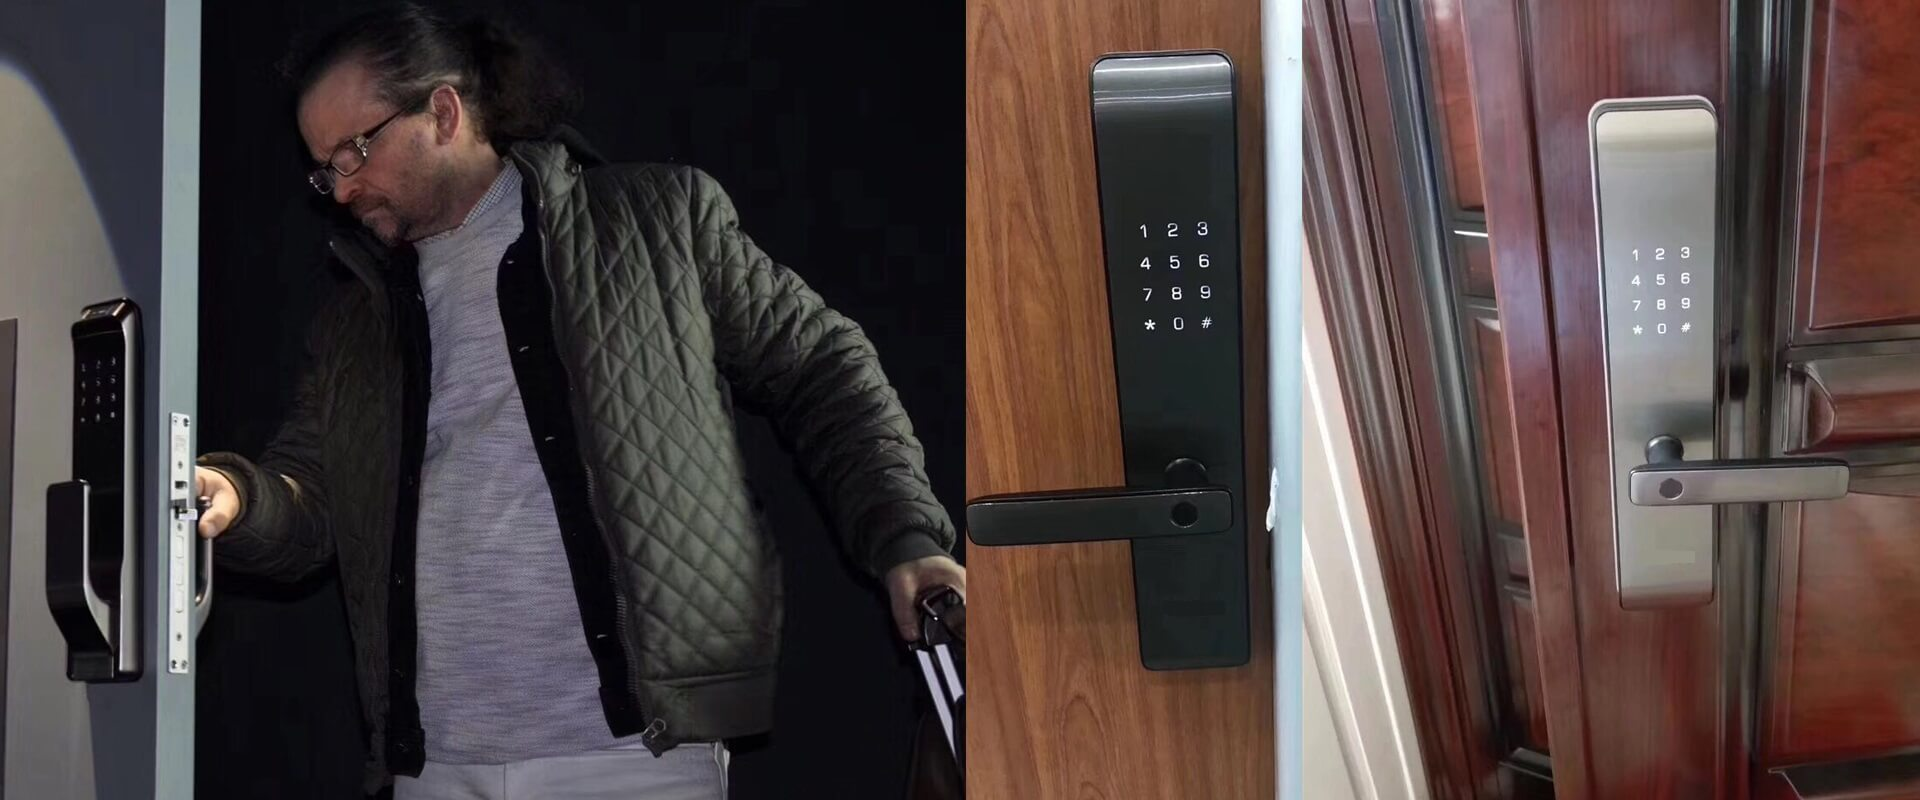 Thumbprint door locks